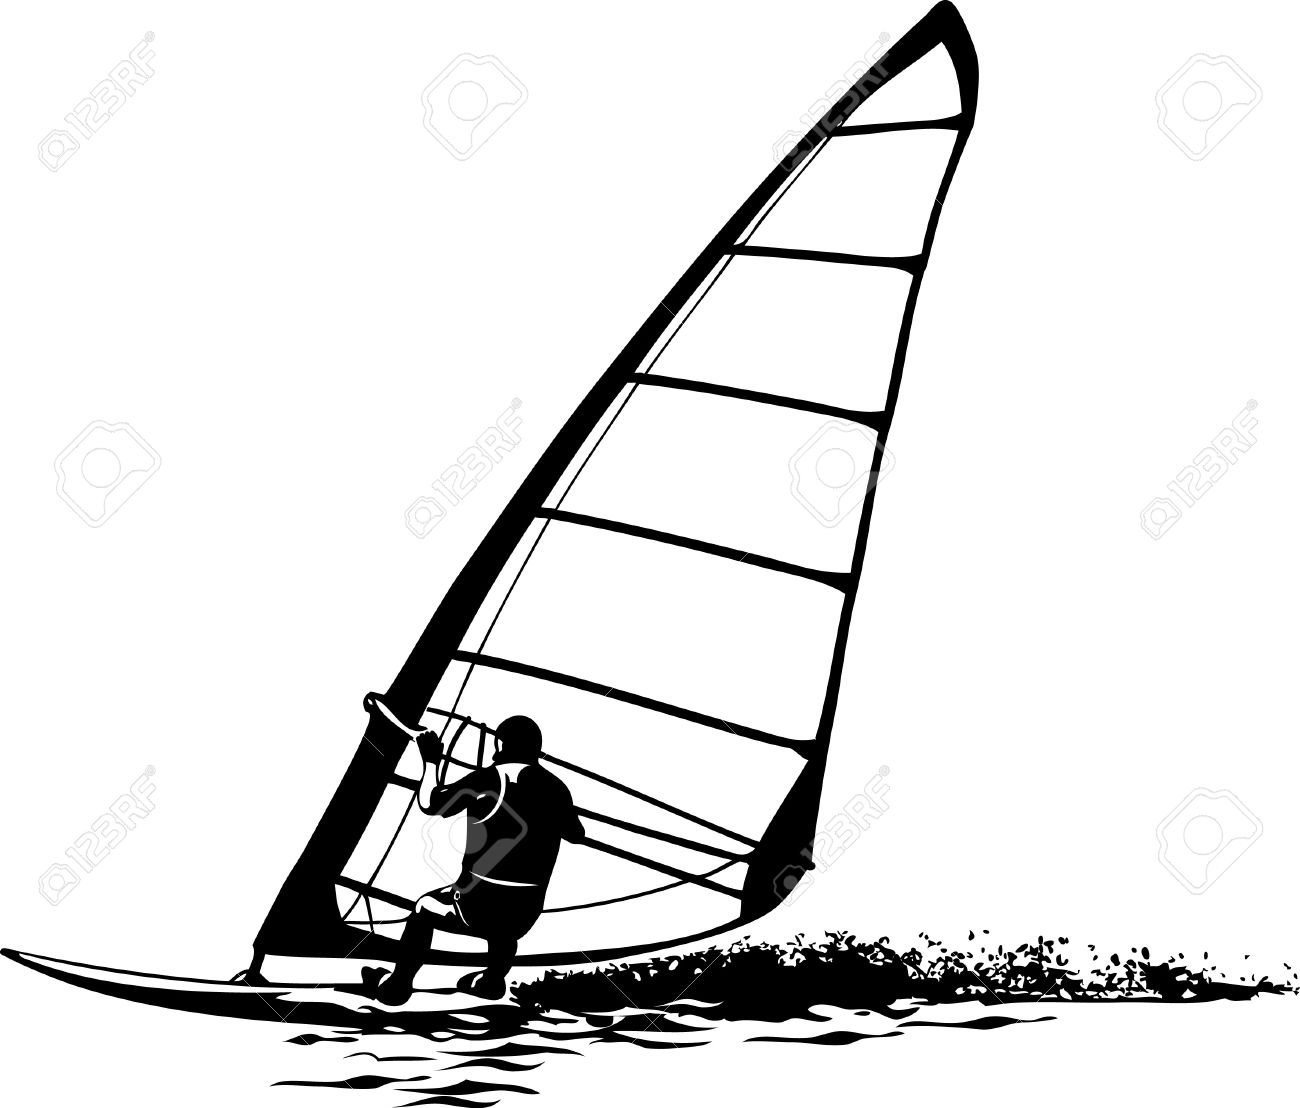 654 Windsurfer Stock Vector Illustration And Royalty Free.